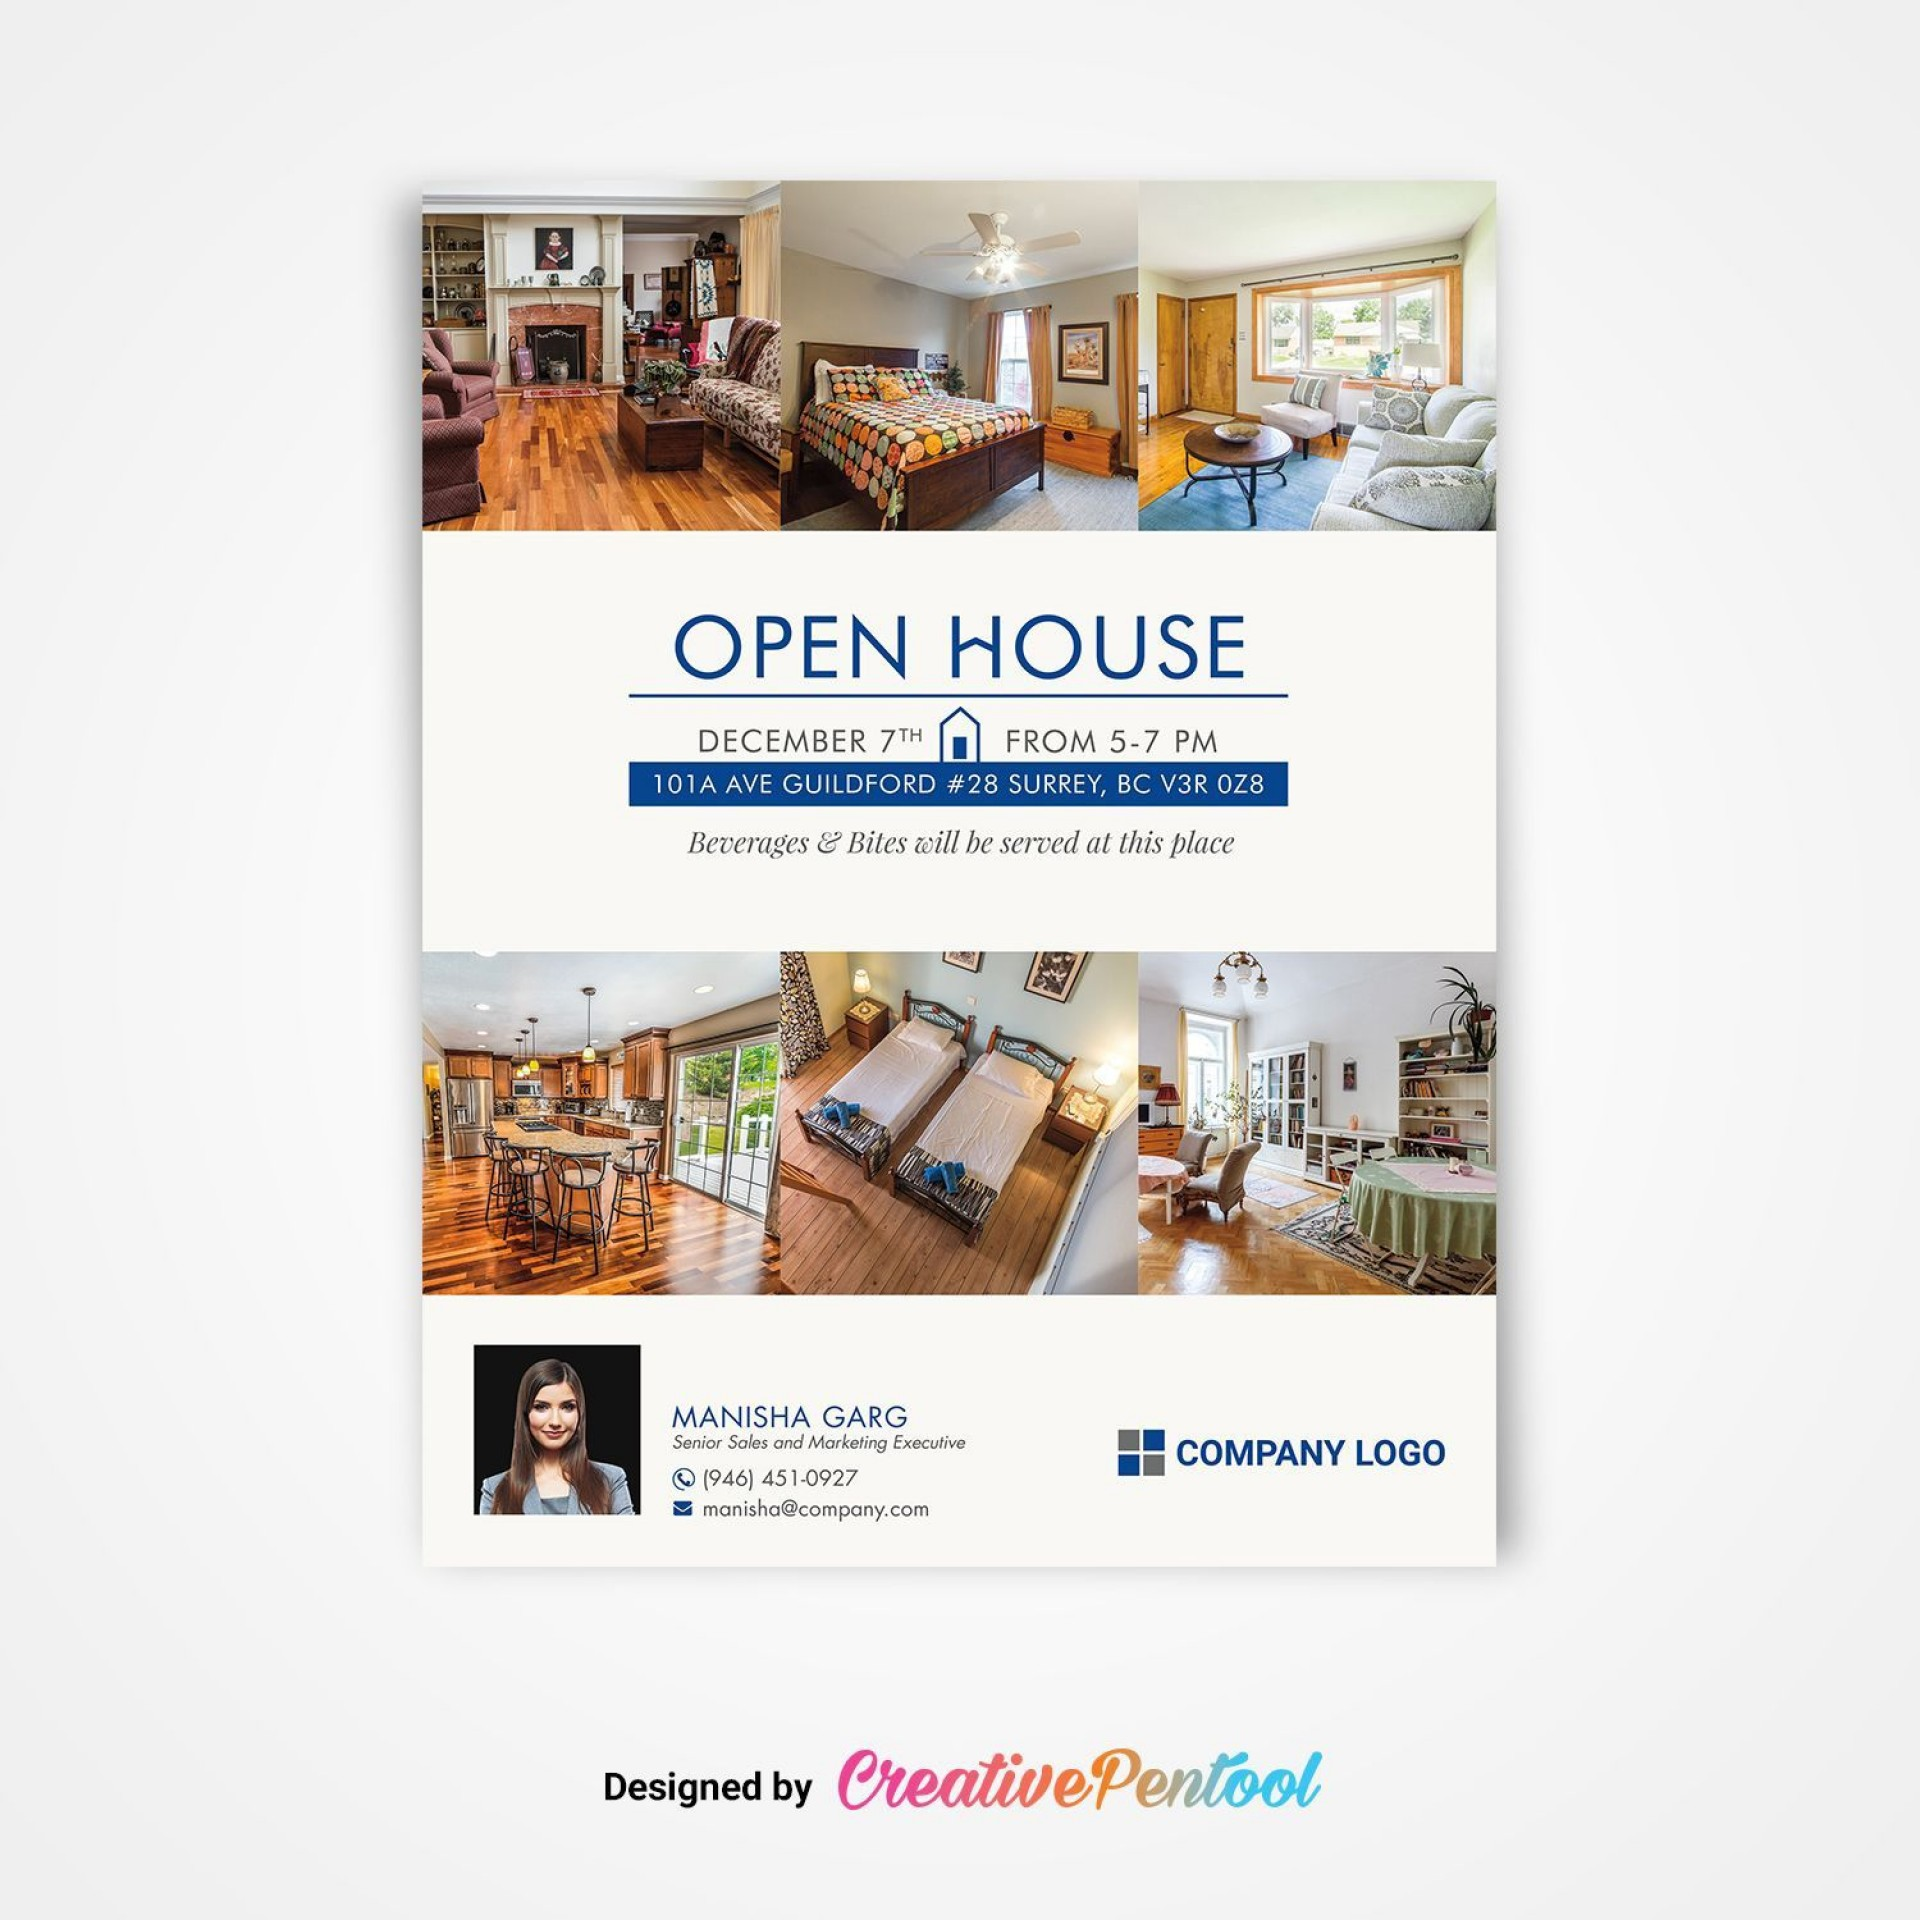 002 Sensational Open House Flyer Template Word High Definition  Free Microsoft School1920